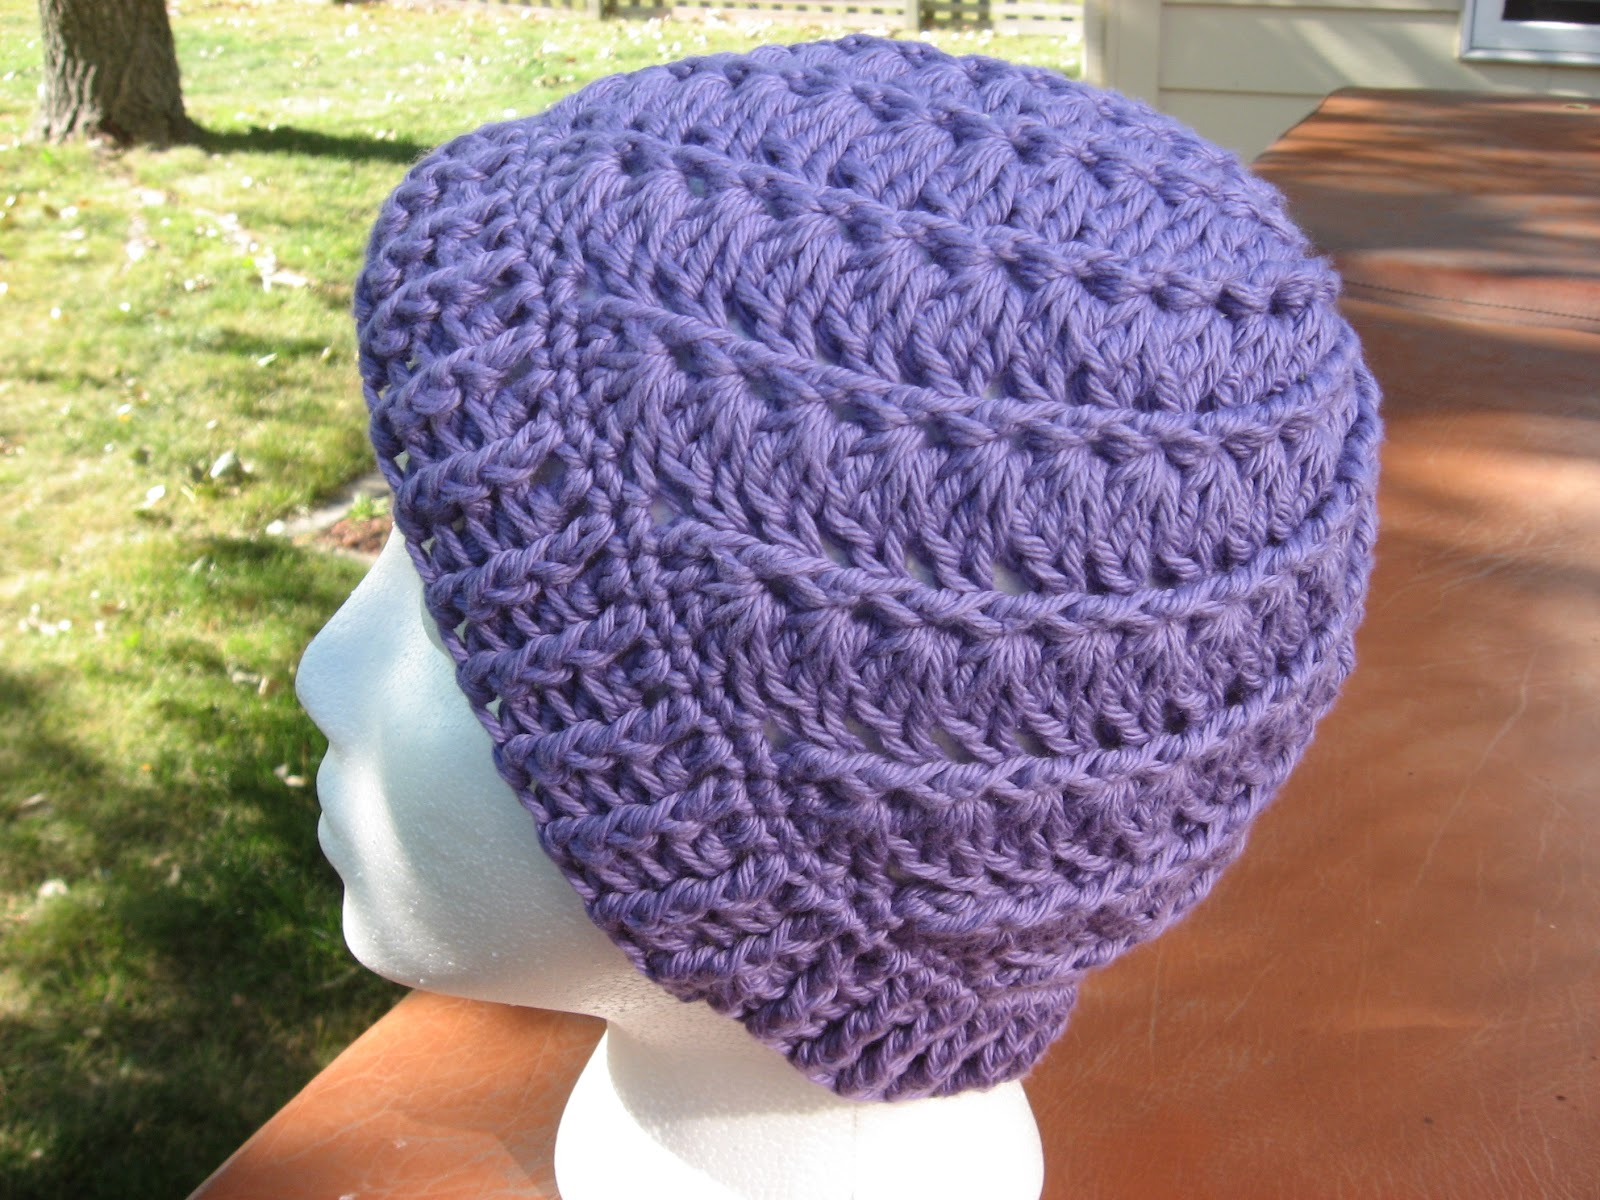 Crochet Projects: Chemo Hats Set #2